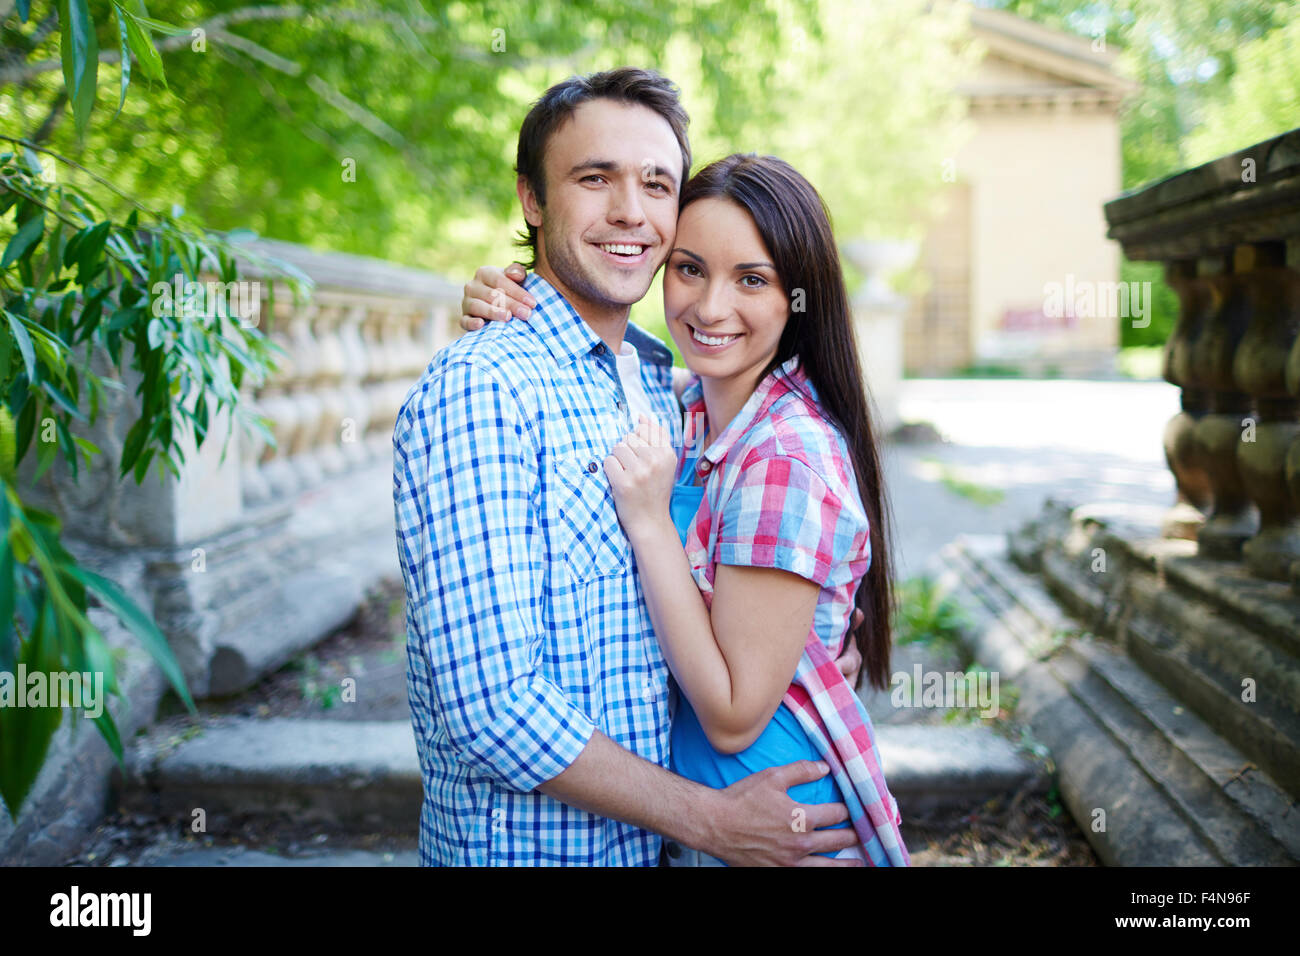 Young couple in embrace looking at camera outdoors - Stock Image